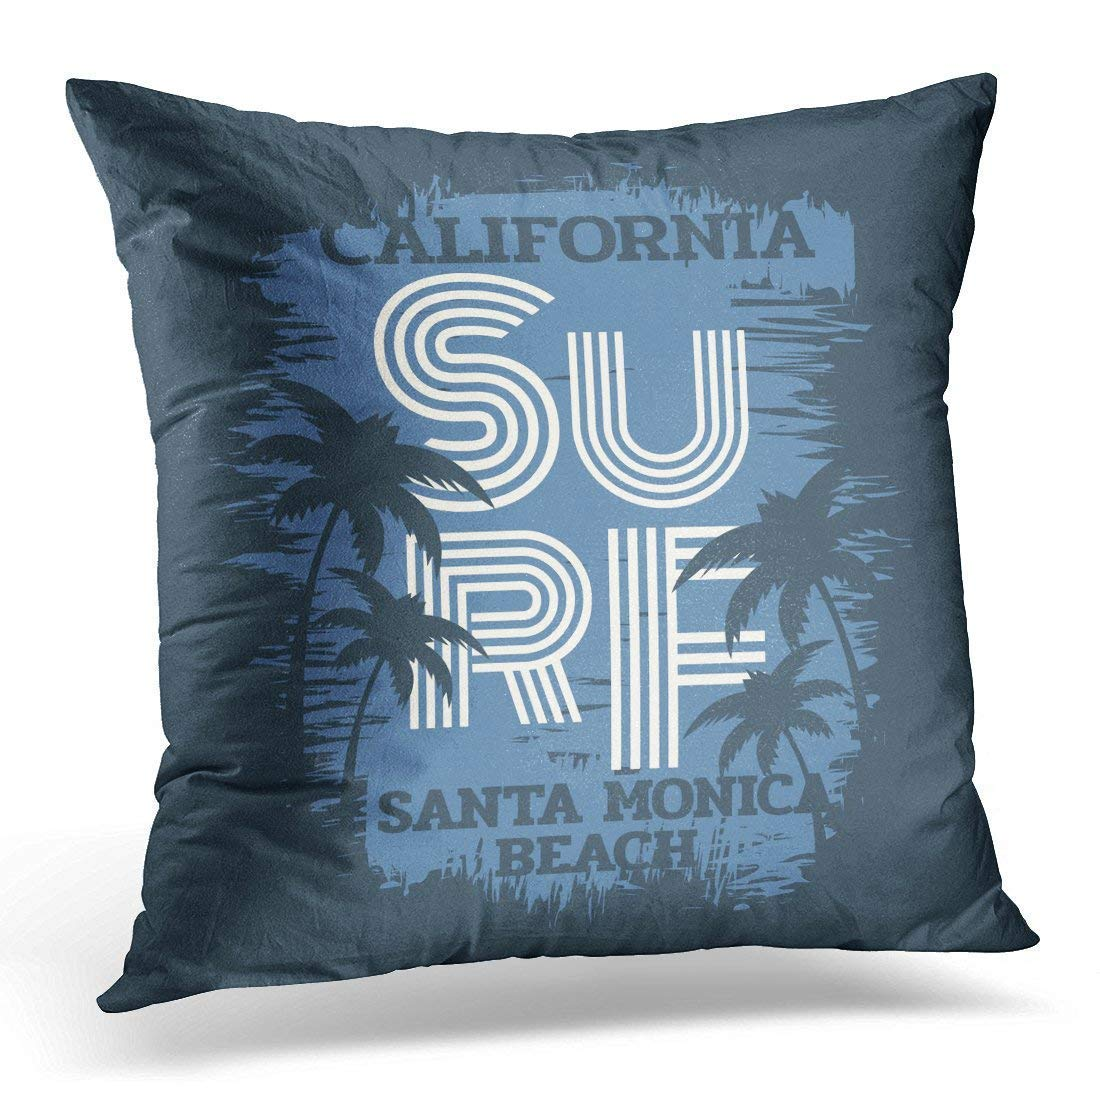 Xukmefat Navy Superior on The of Surf and Surfing in California Santa Monica Beach Grunge Graphics Sunshine Decorative Pillow Case Home Decor Square 18x18 Inches Pillowcase